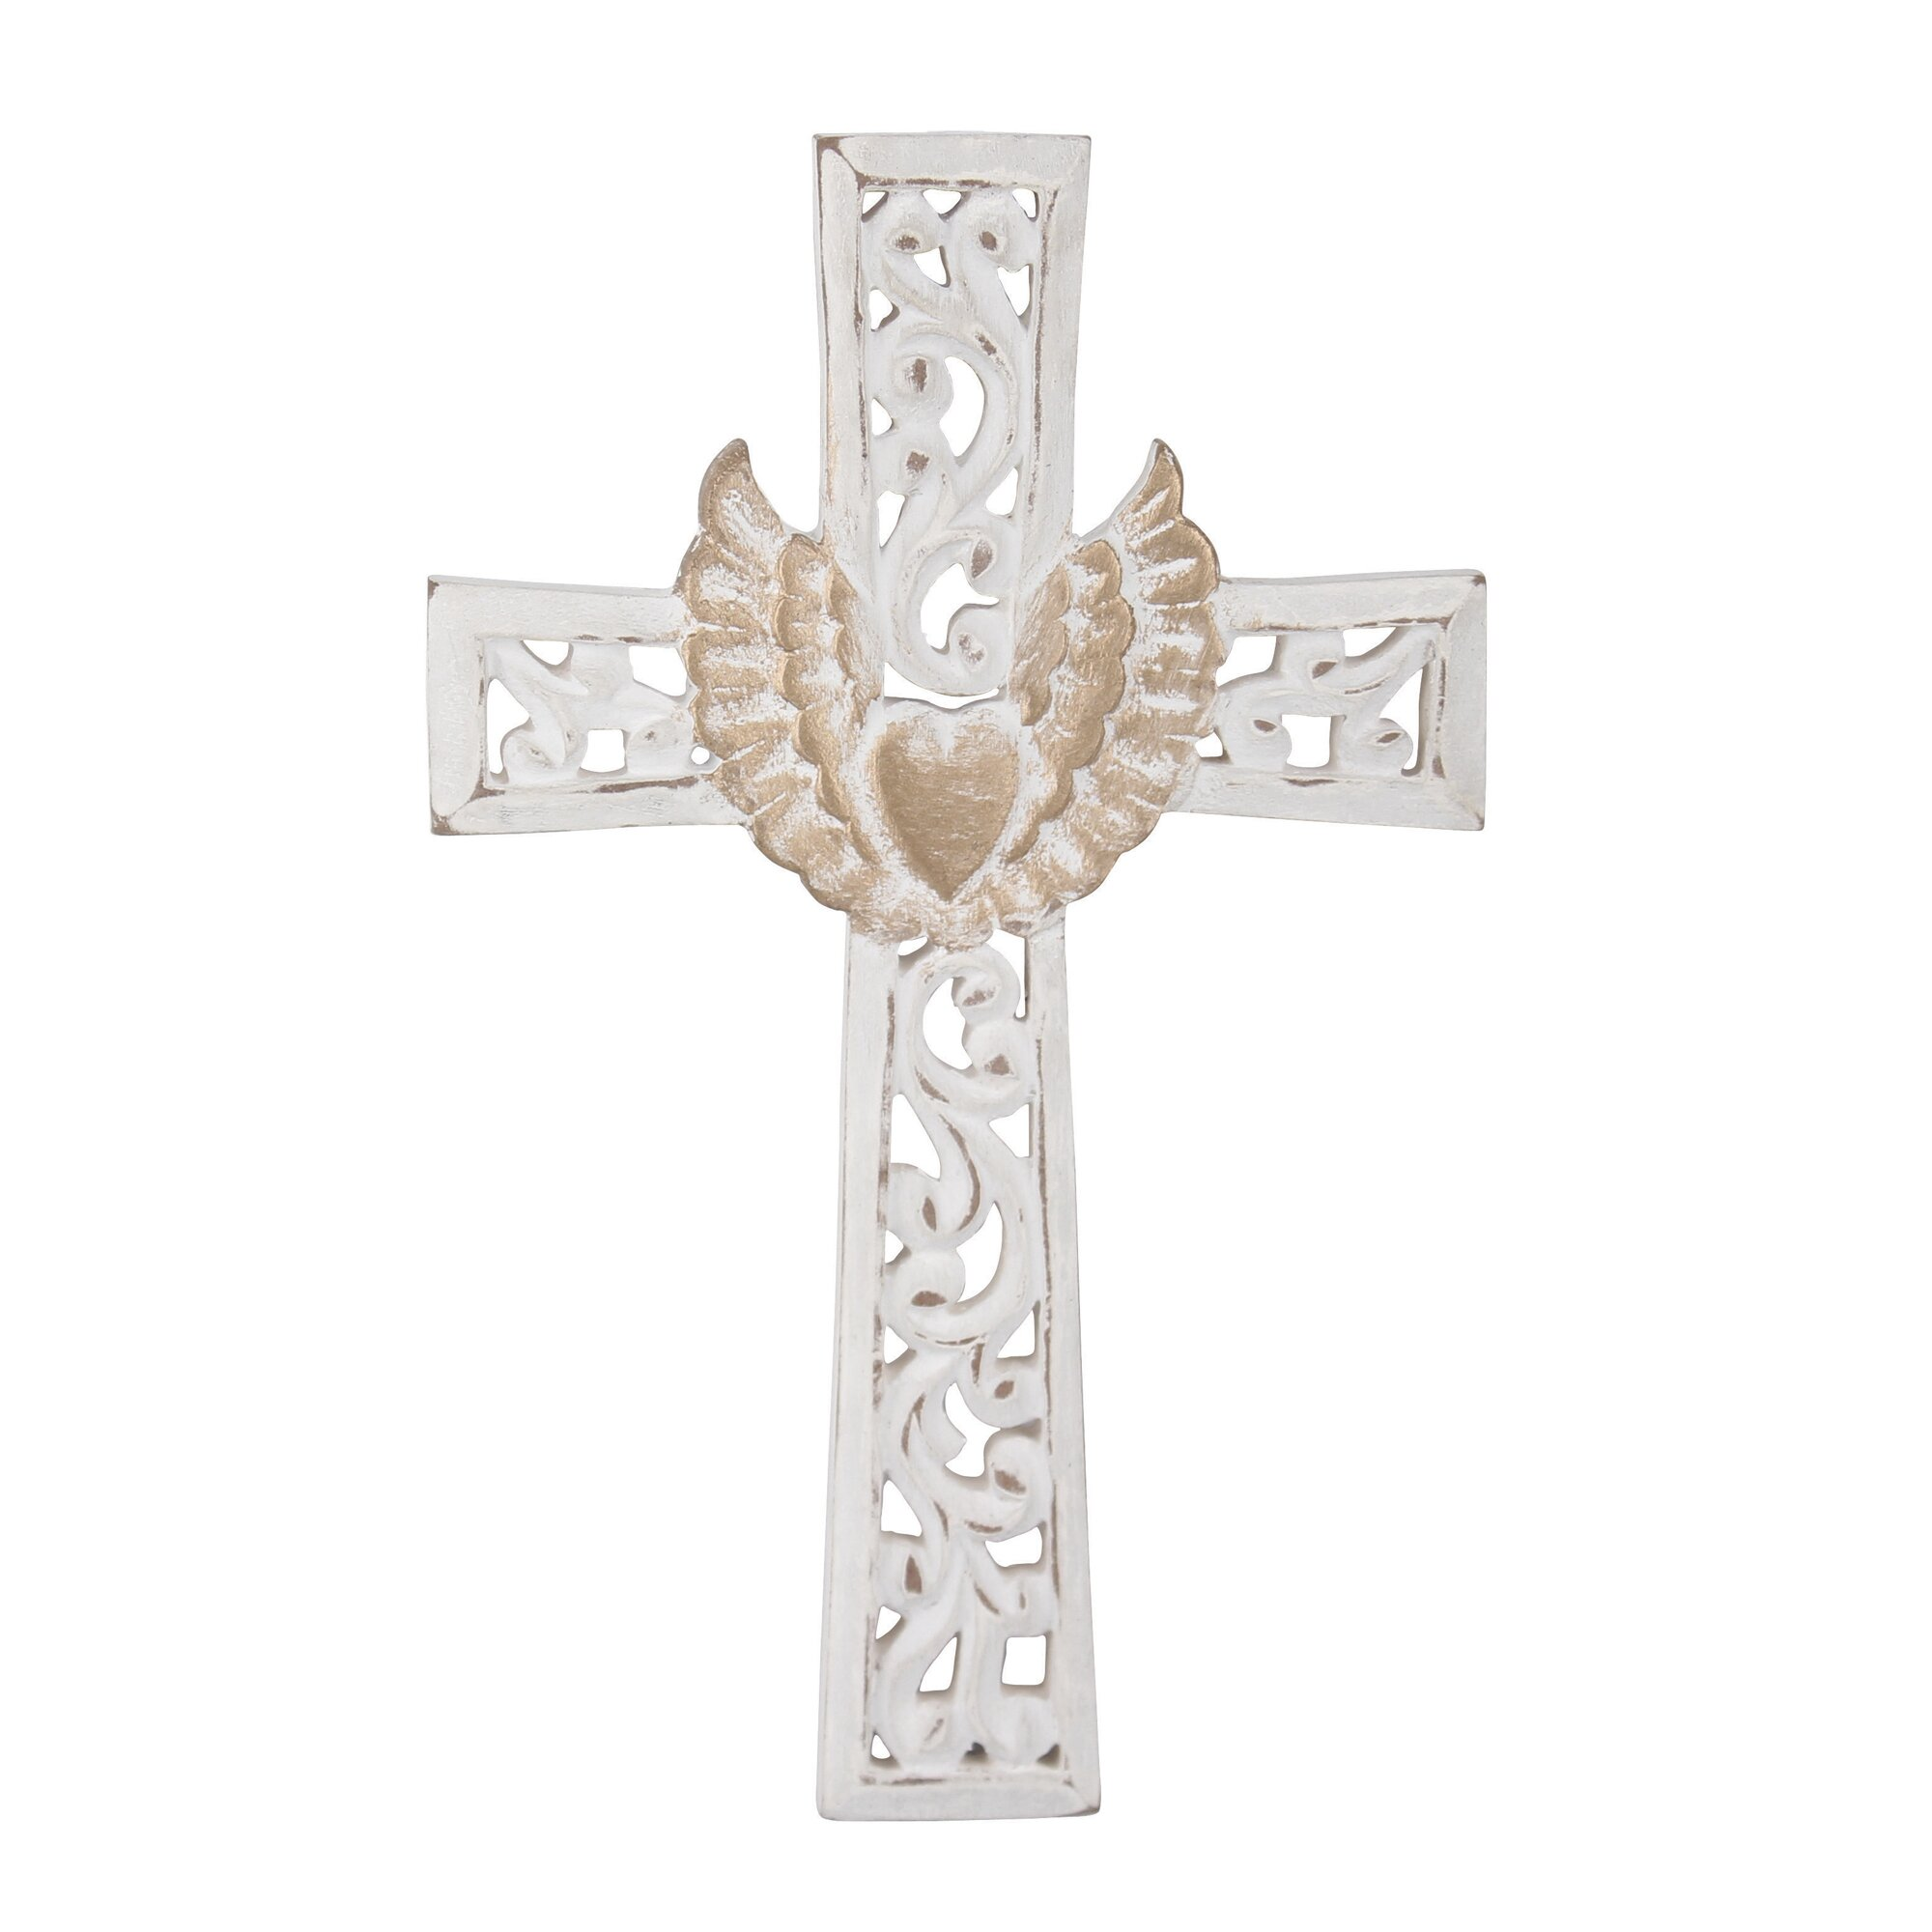 Ckk home d cor lp stonebriar winged heart cross wall decor reviews wayfair Home decor wall crosses